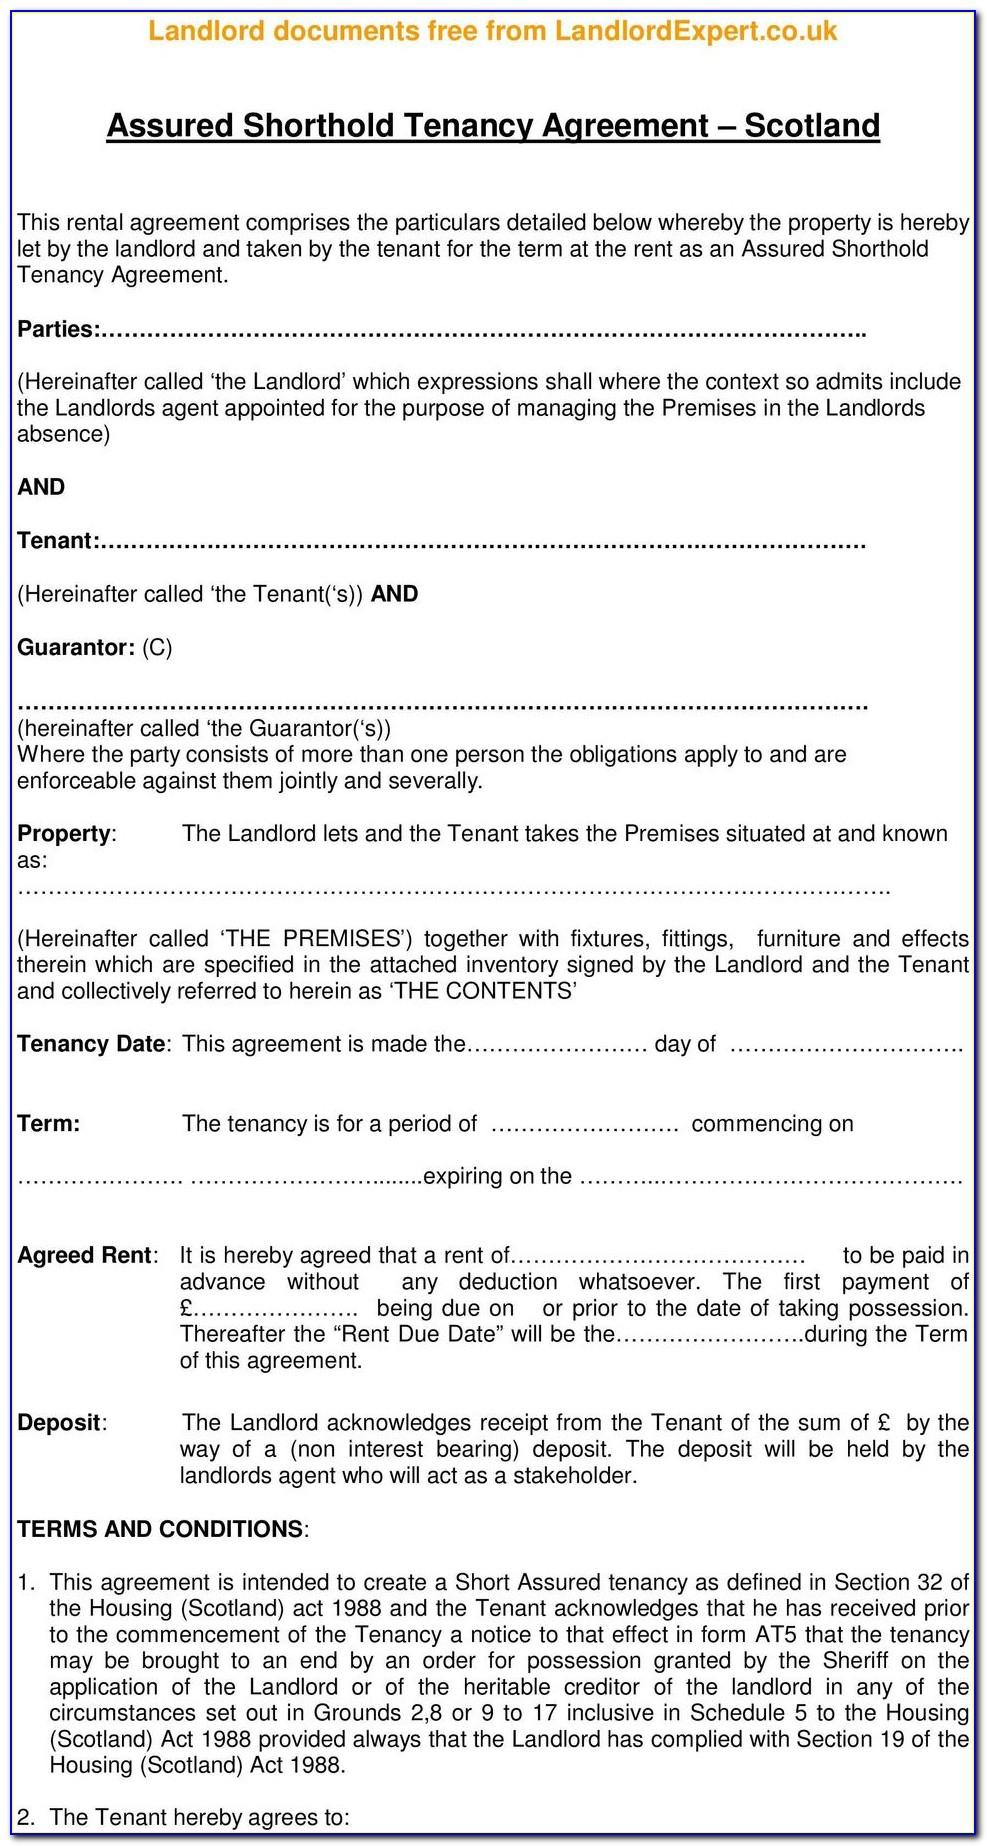 Shorthold Tenancy Agreement Template Scotland